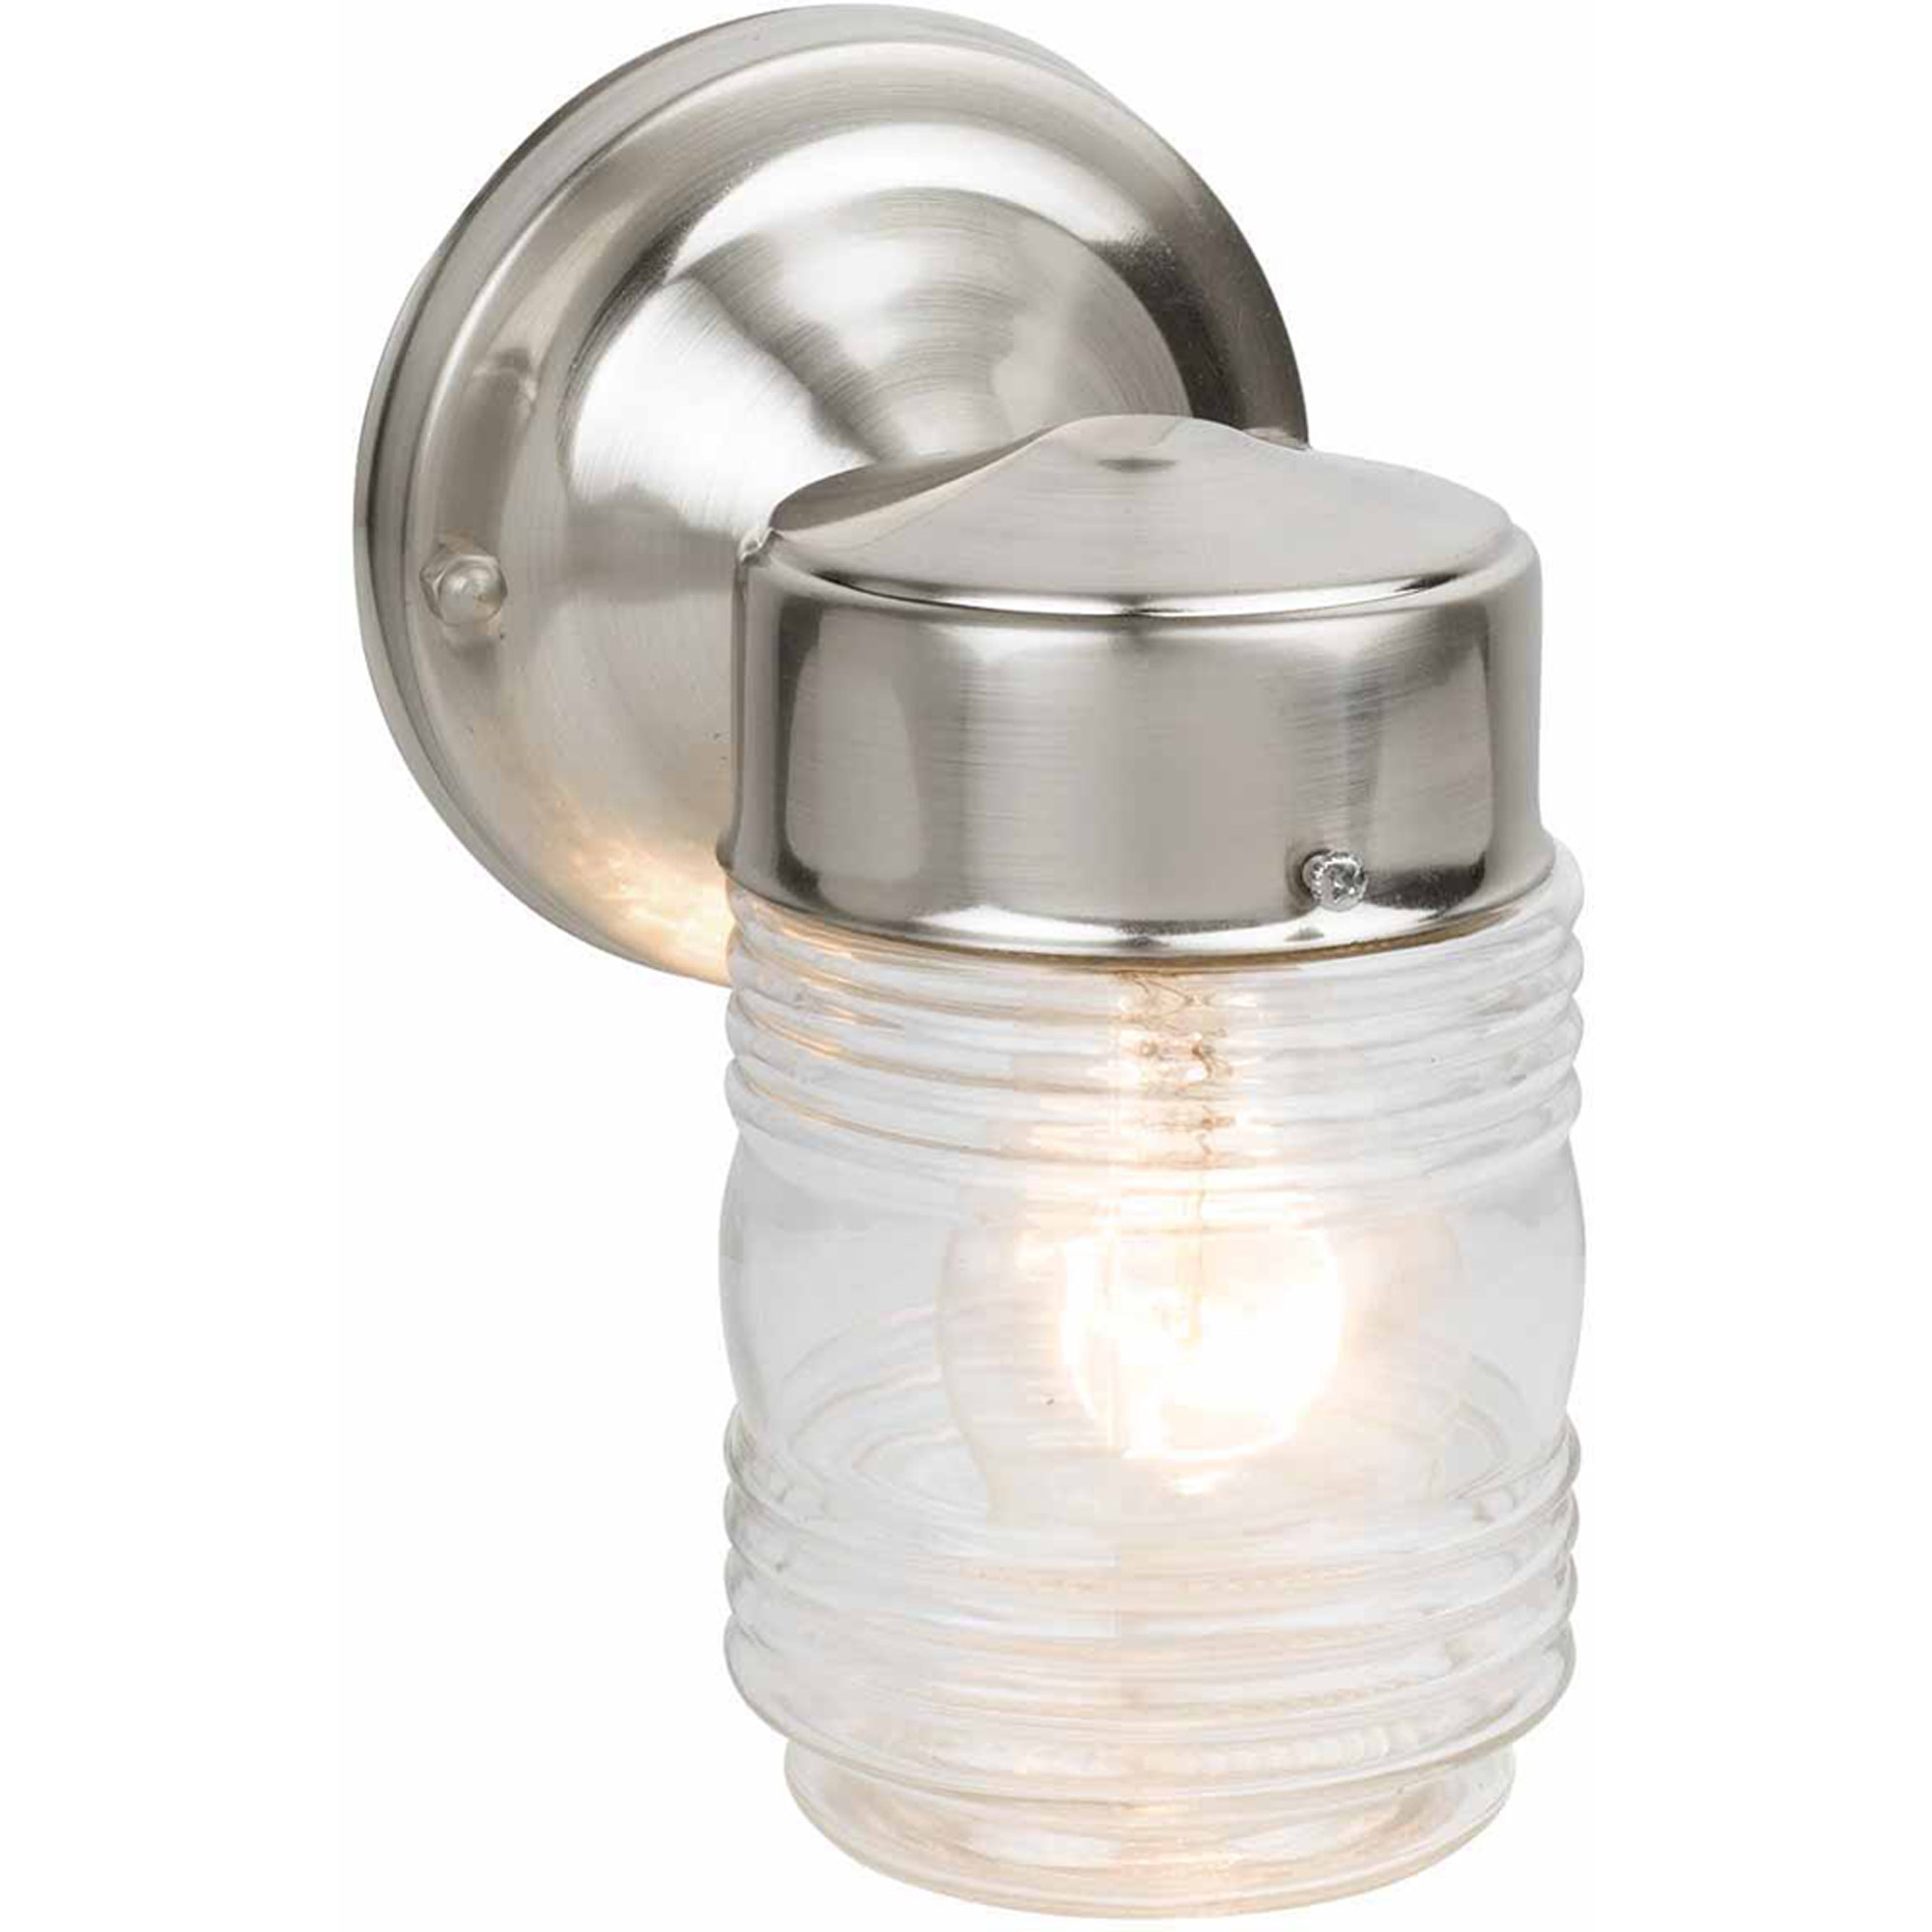 "Design House 507806 Jelly Jar Outdoor Downlight, 4.5"" x 7.5"", Satin Nickel Finish"